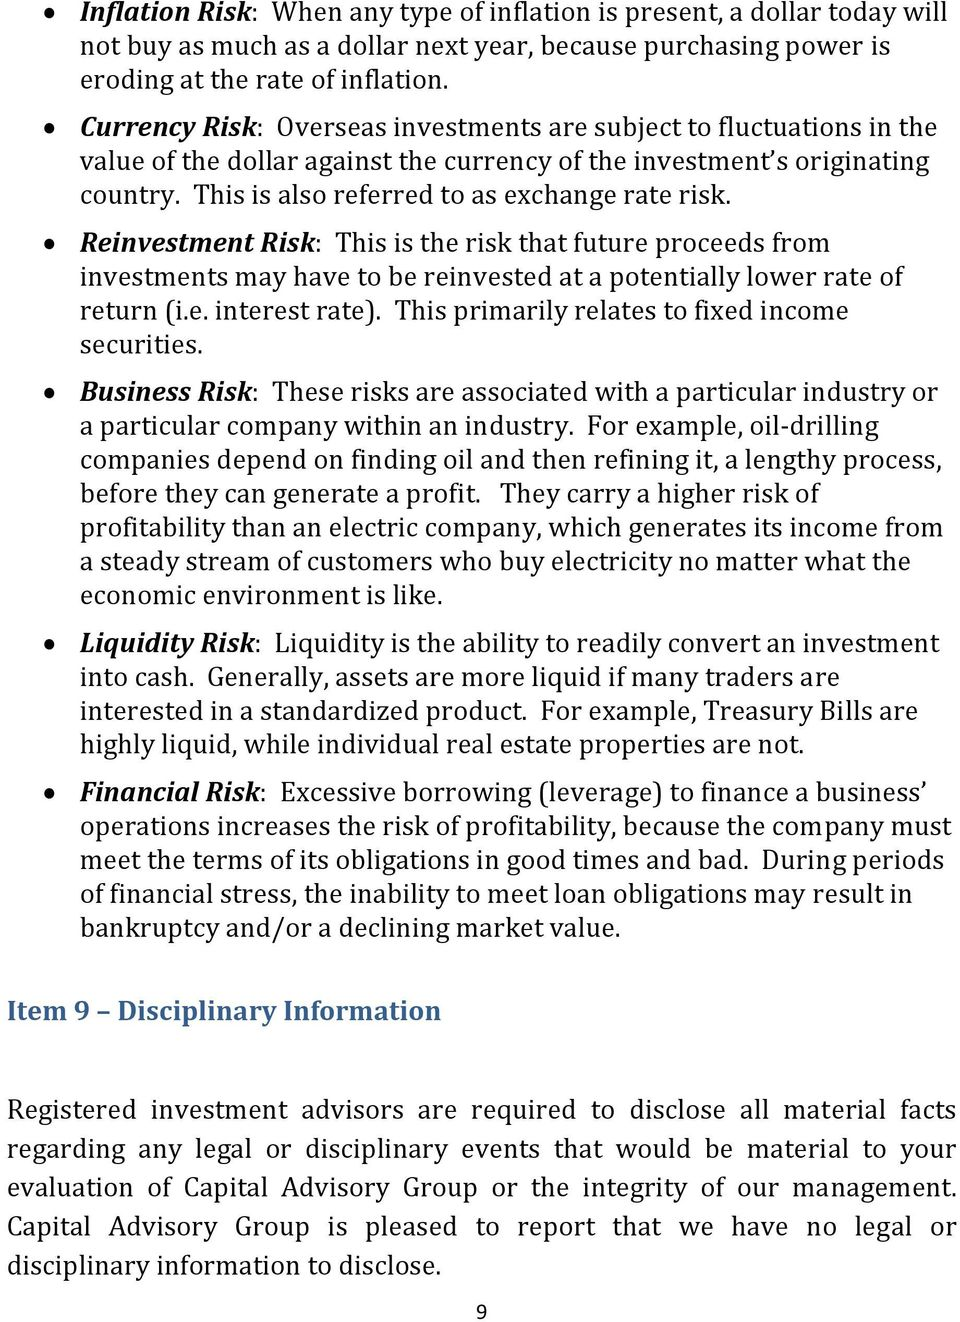 Reinvestment Risk: This is the risk that future proceeds from investments may have to be reinvested at a potentially lower rate of return (i.e. interest rate).